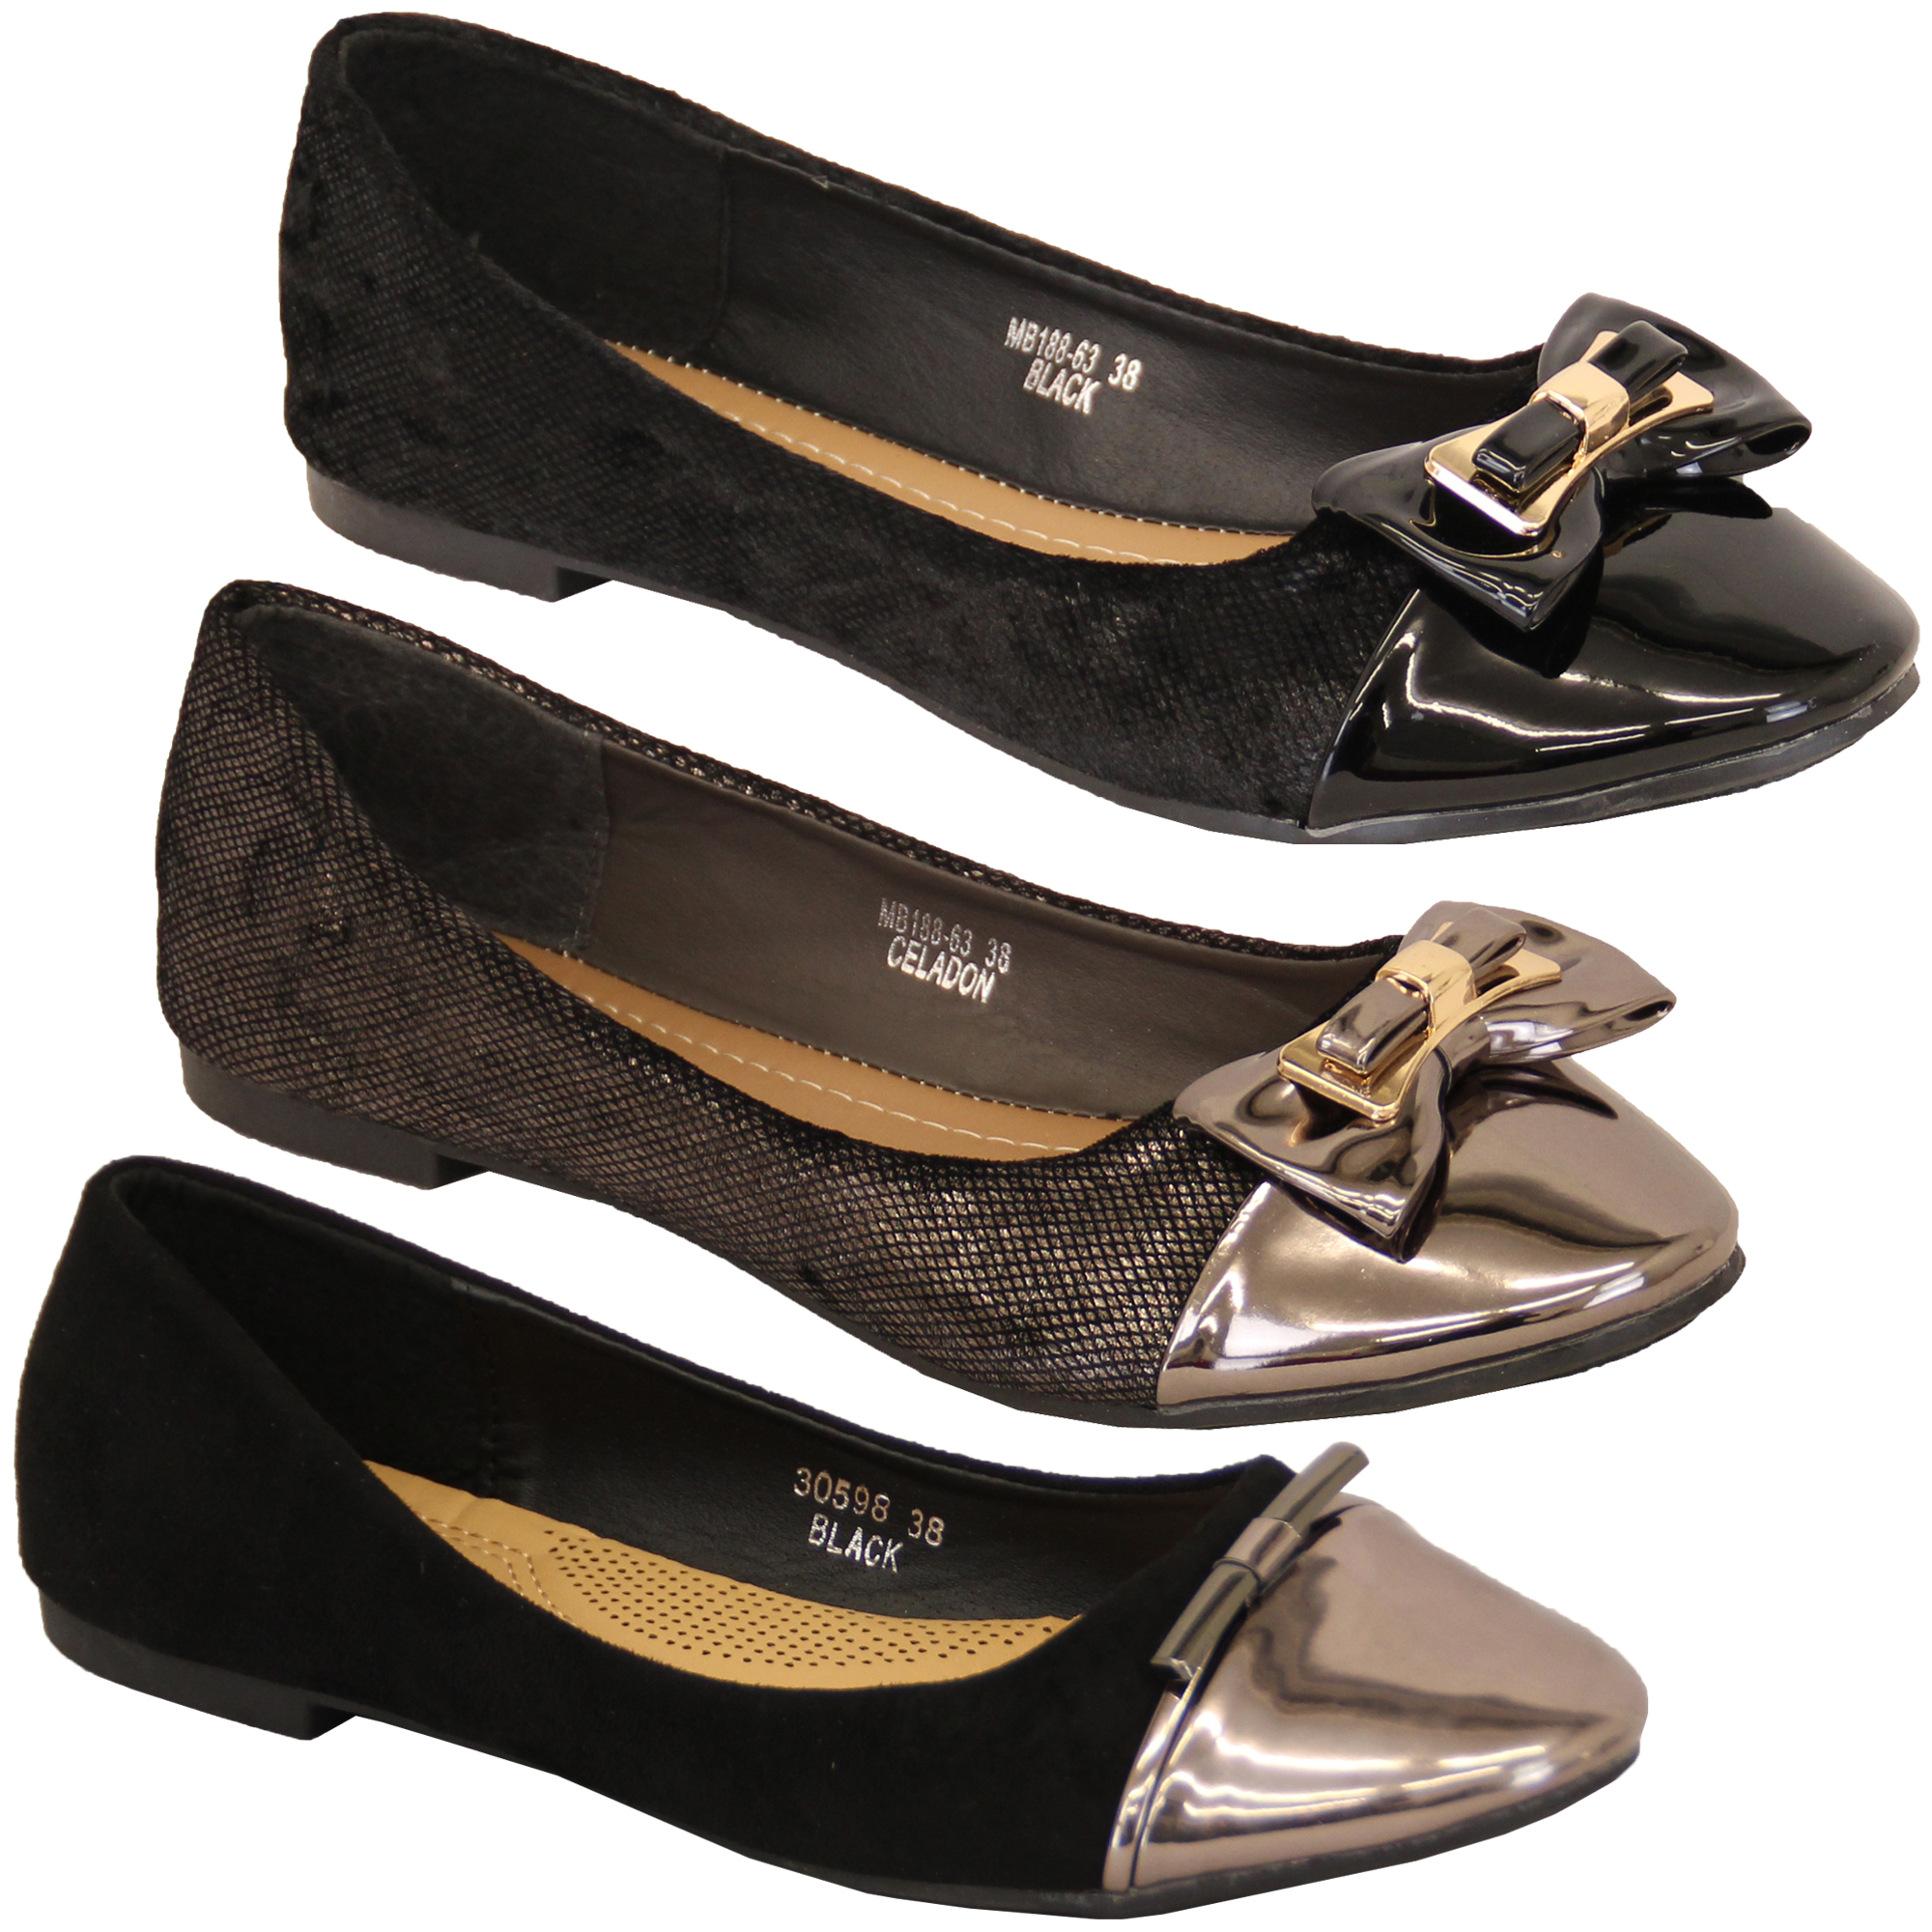 410016b6c Details about Ladies Ballerina Shoes Womens Flat Pumps Slip On Patent Bow Casual  Fashion New